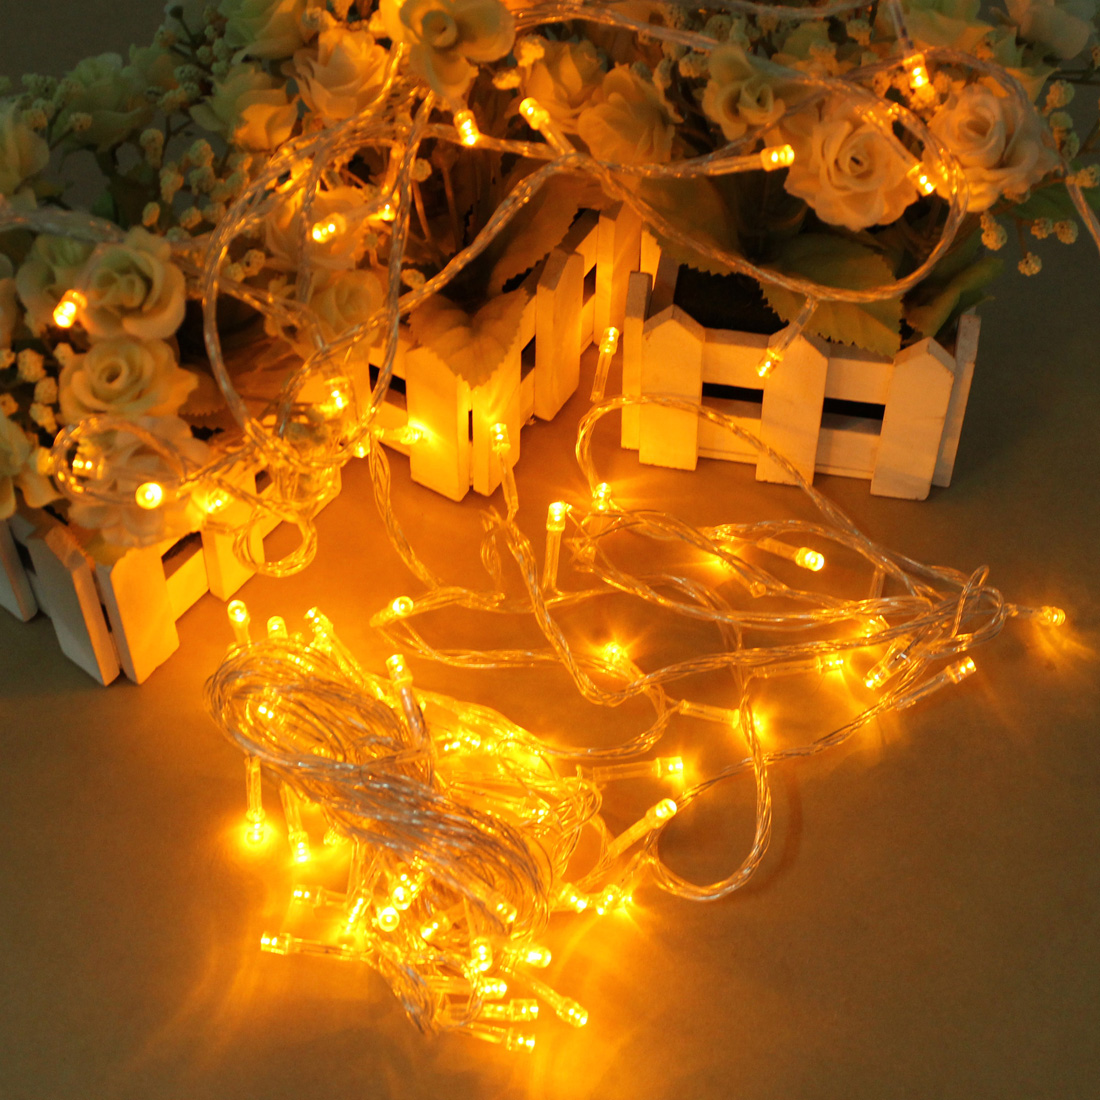 Led m yellow string decoration light for christmas